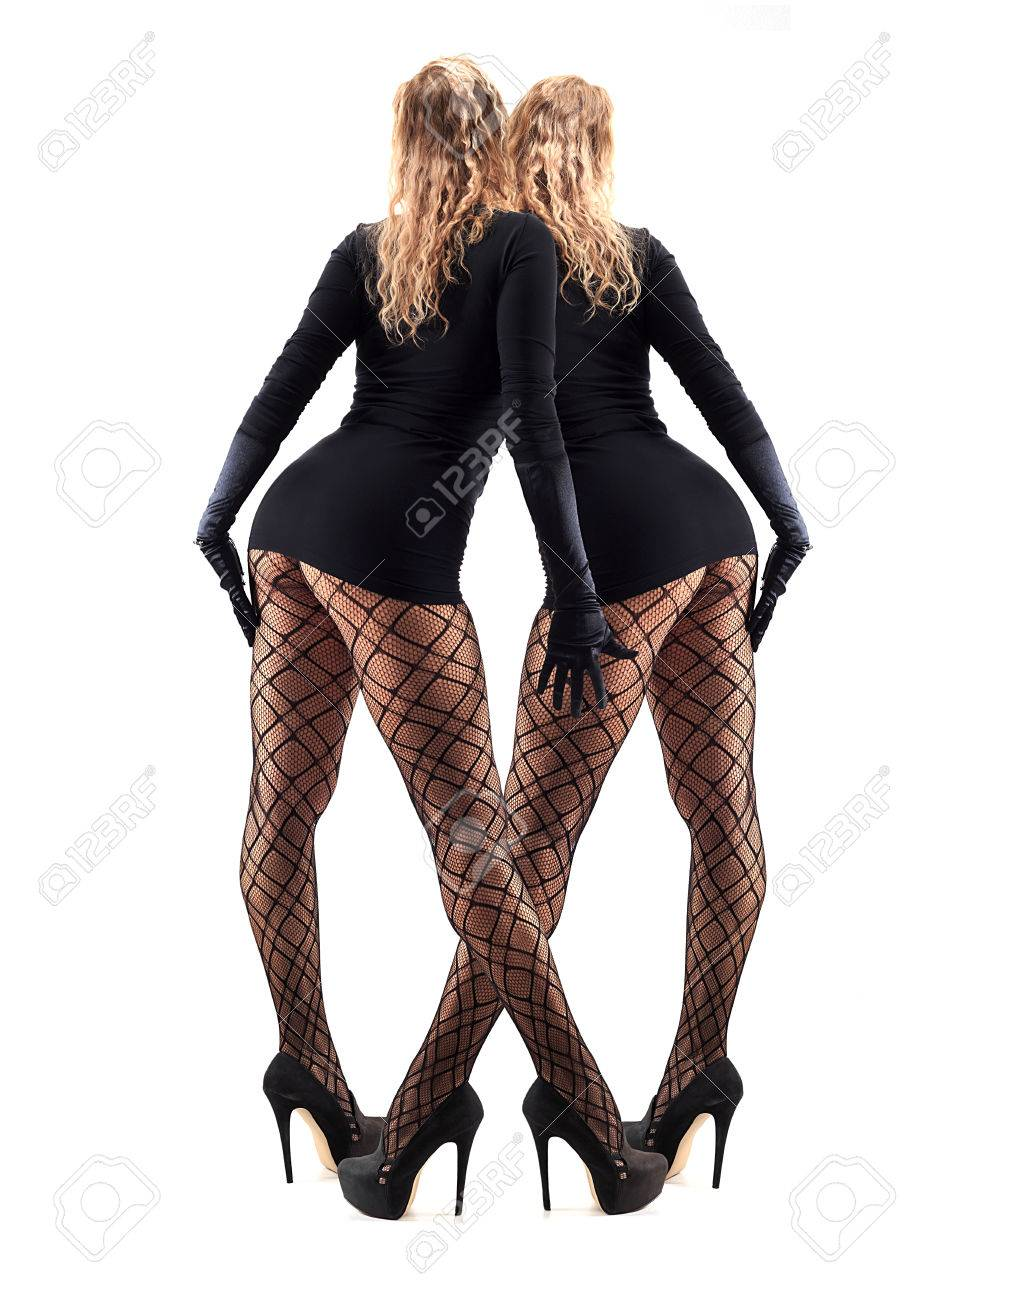 High Heels Beautiful And Sexy In Stockings Legs Stylish Female WeDHIbE9Y2